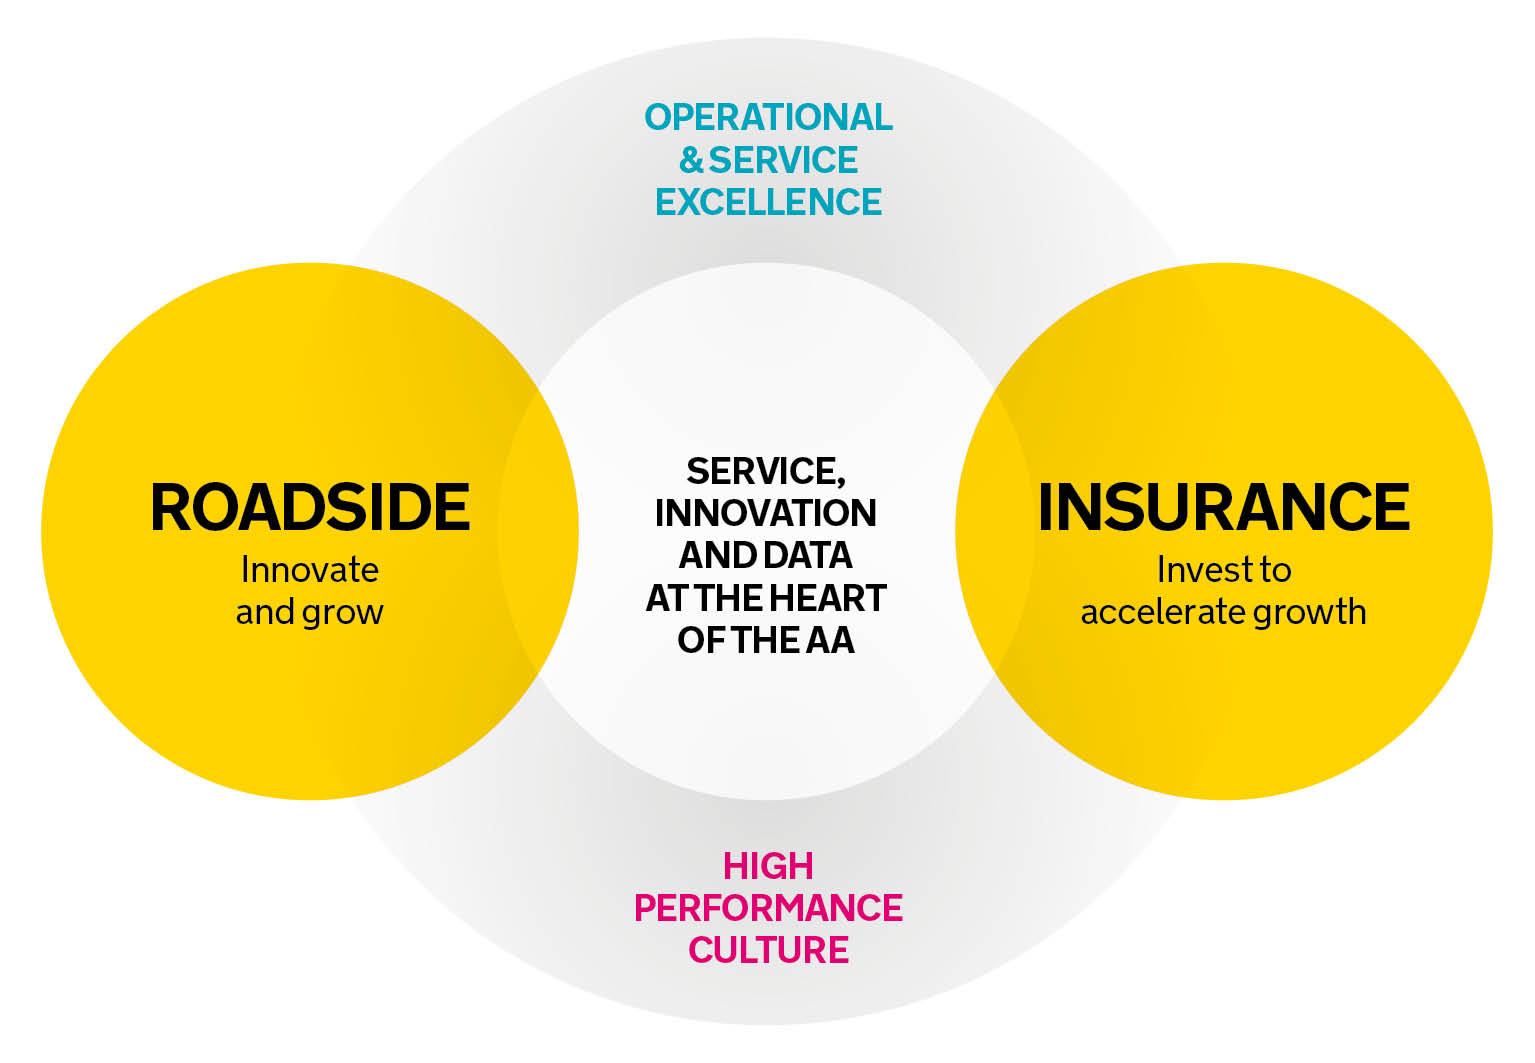 We are putting services, innovation and data at the heart of the AA